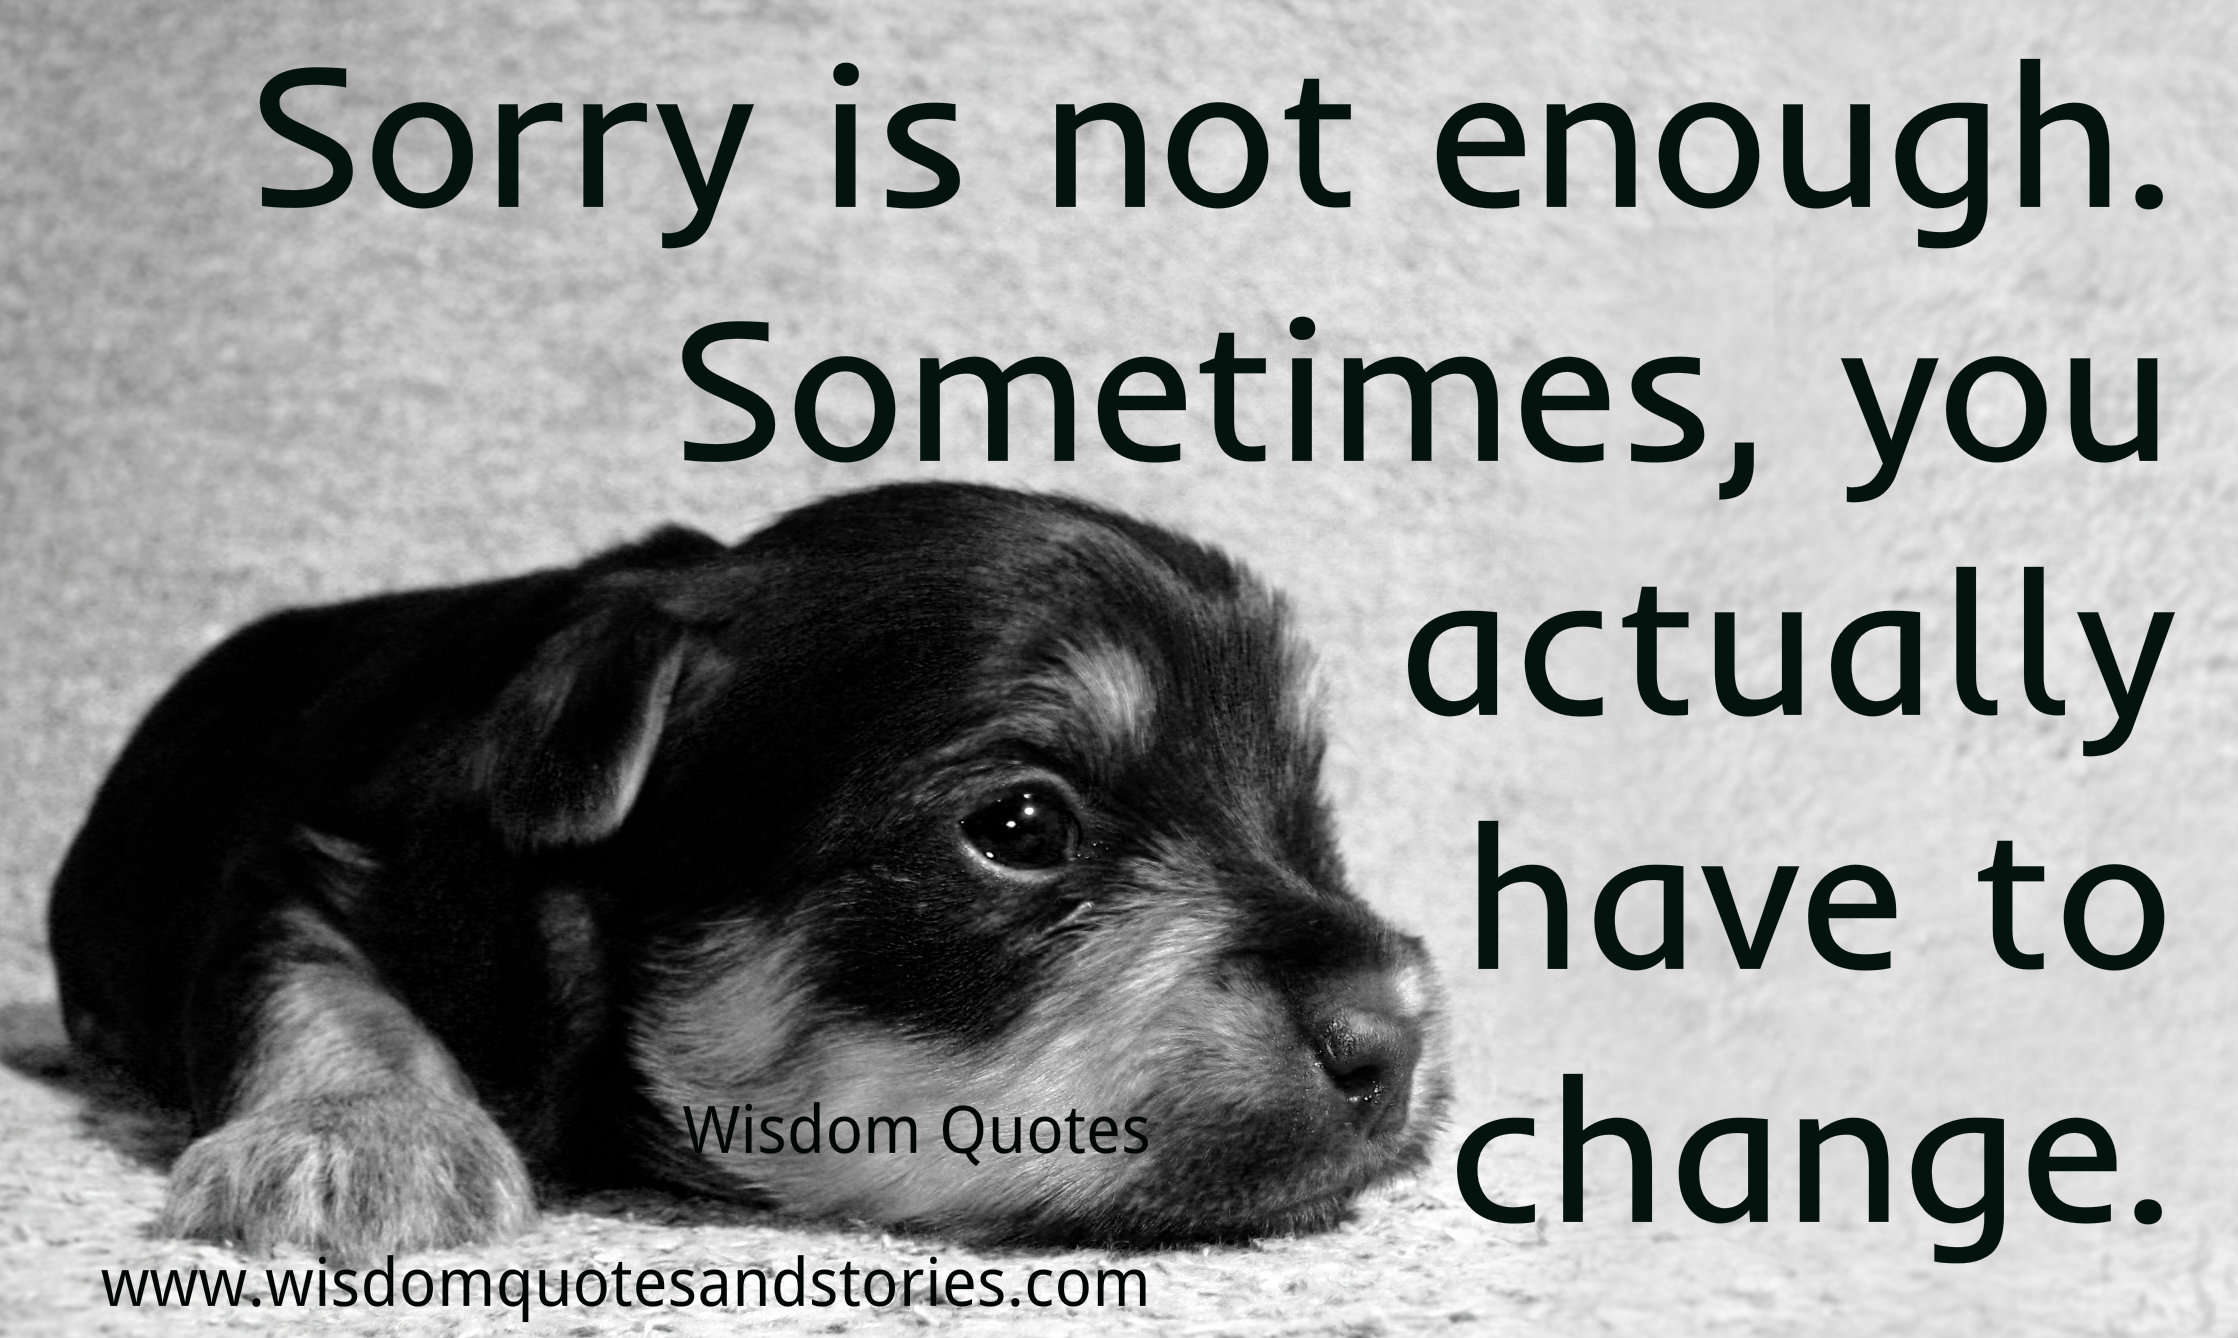 Sorry is not enough. Sometimes you have to change.